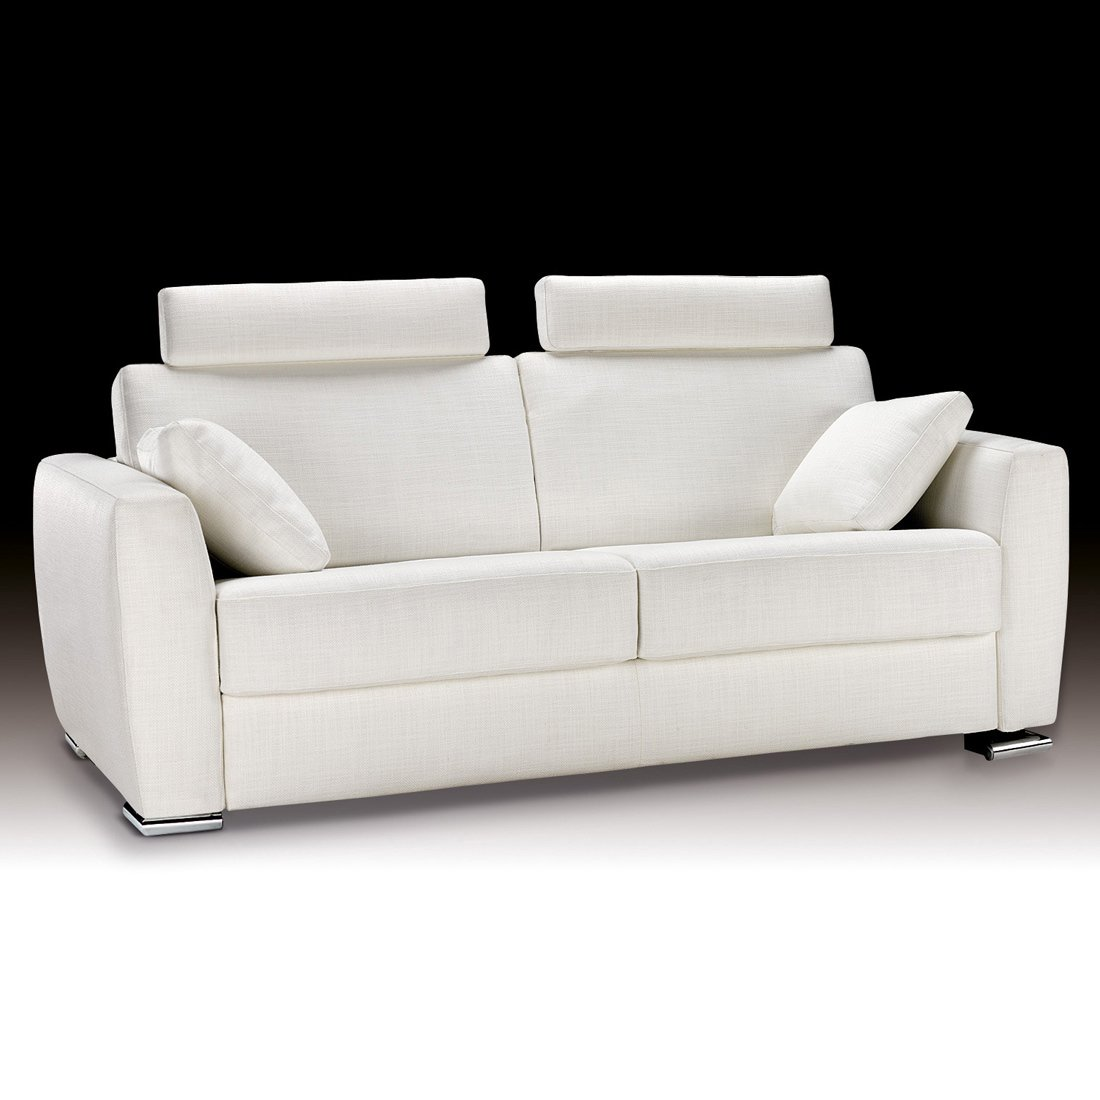 Canape lit couchage quotidien awesome canap convertible for Convertible couchage quotidien